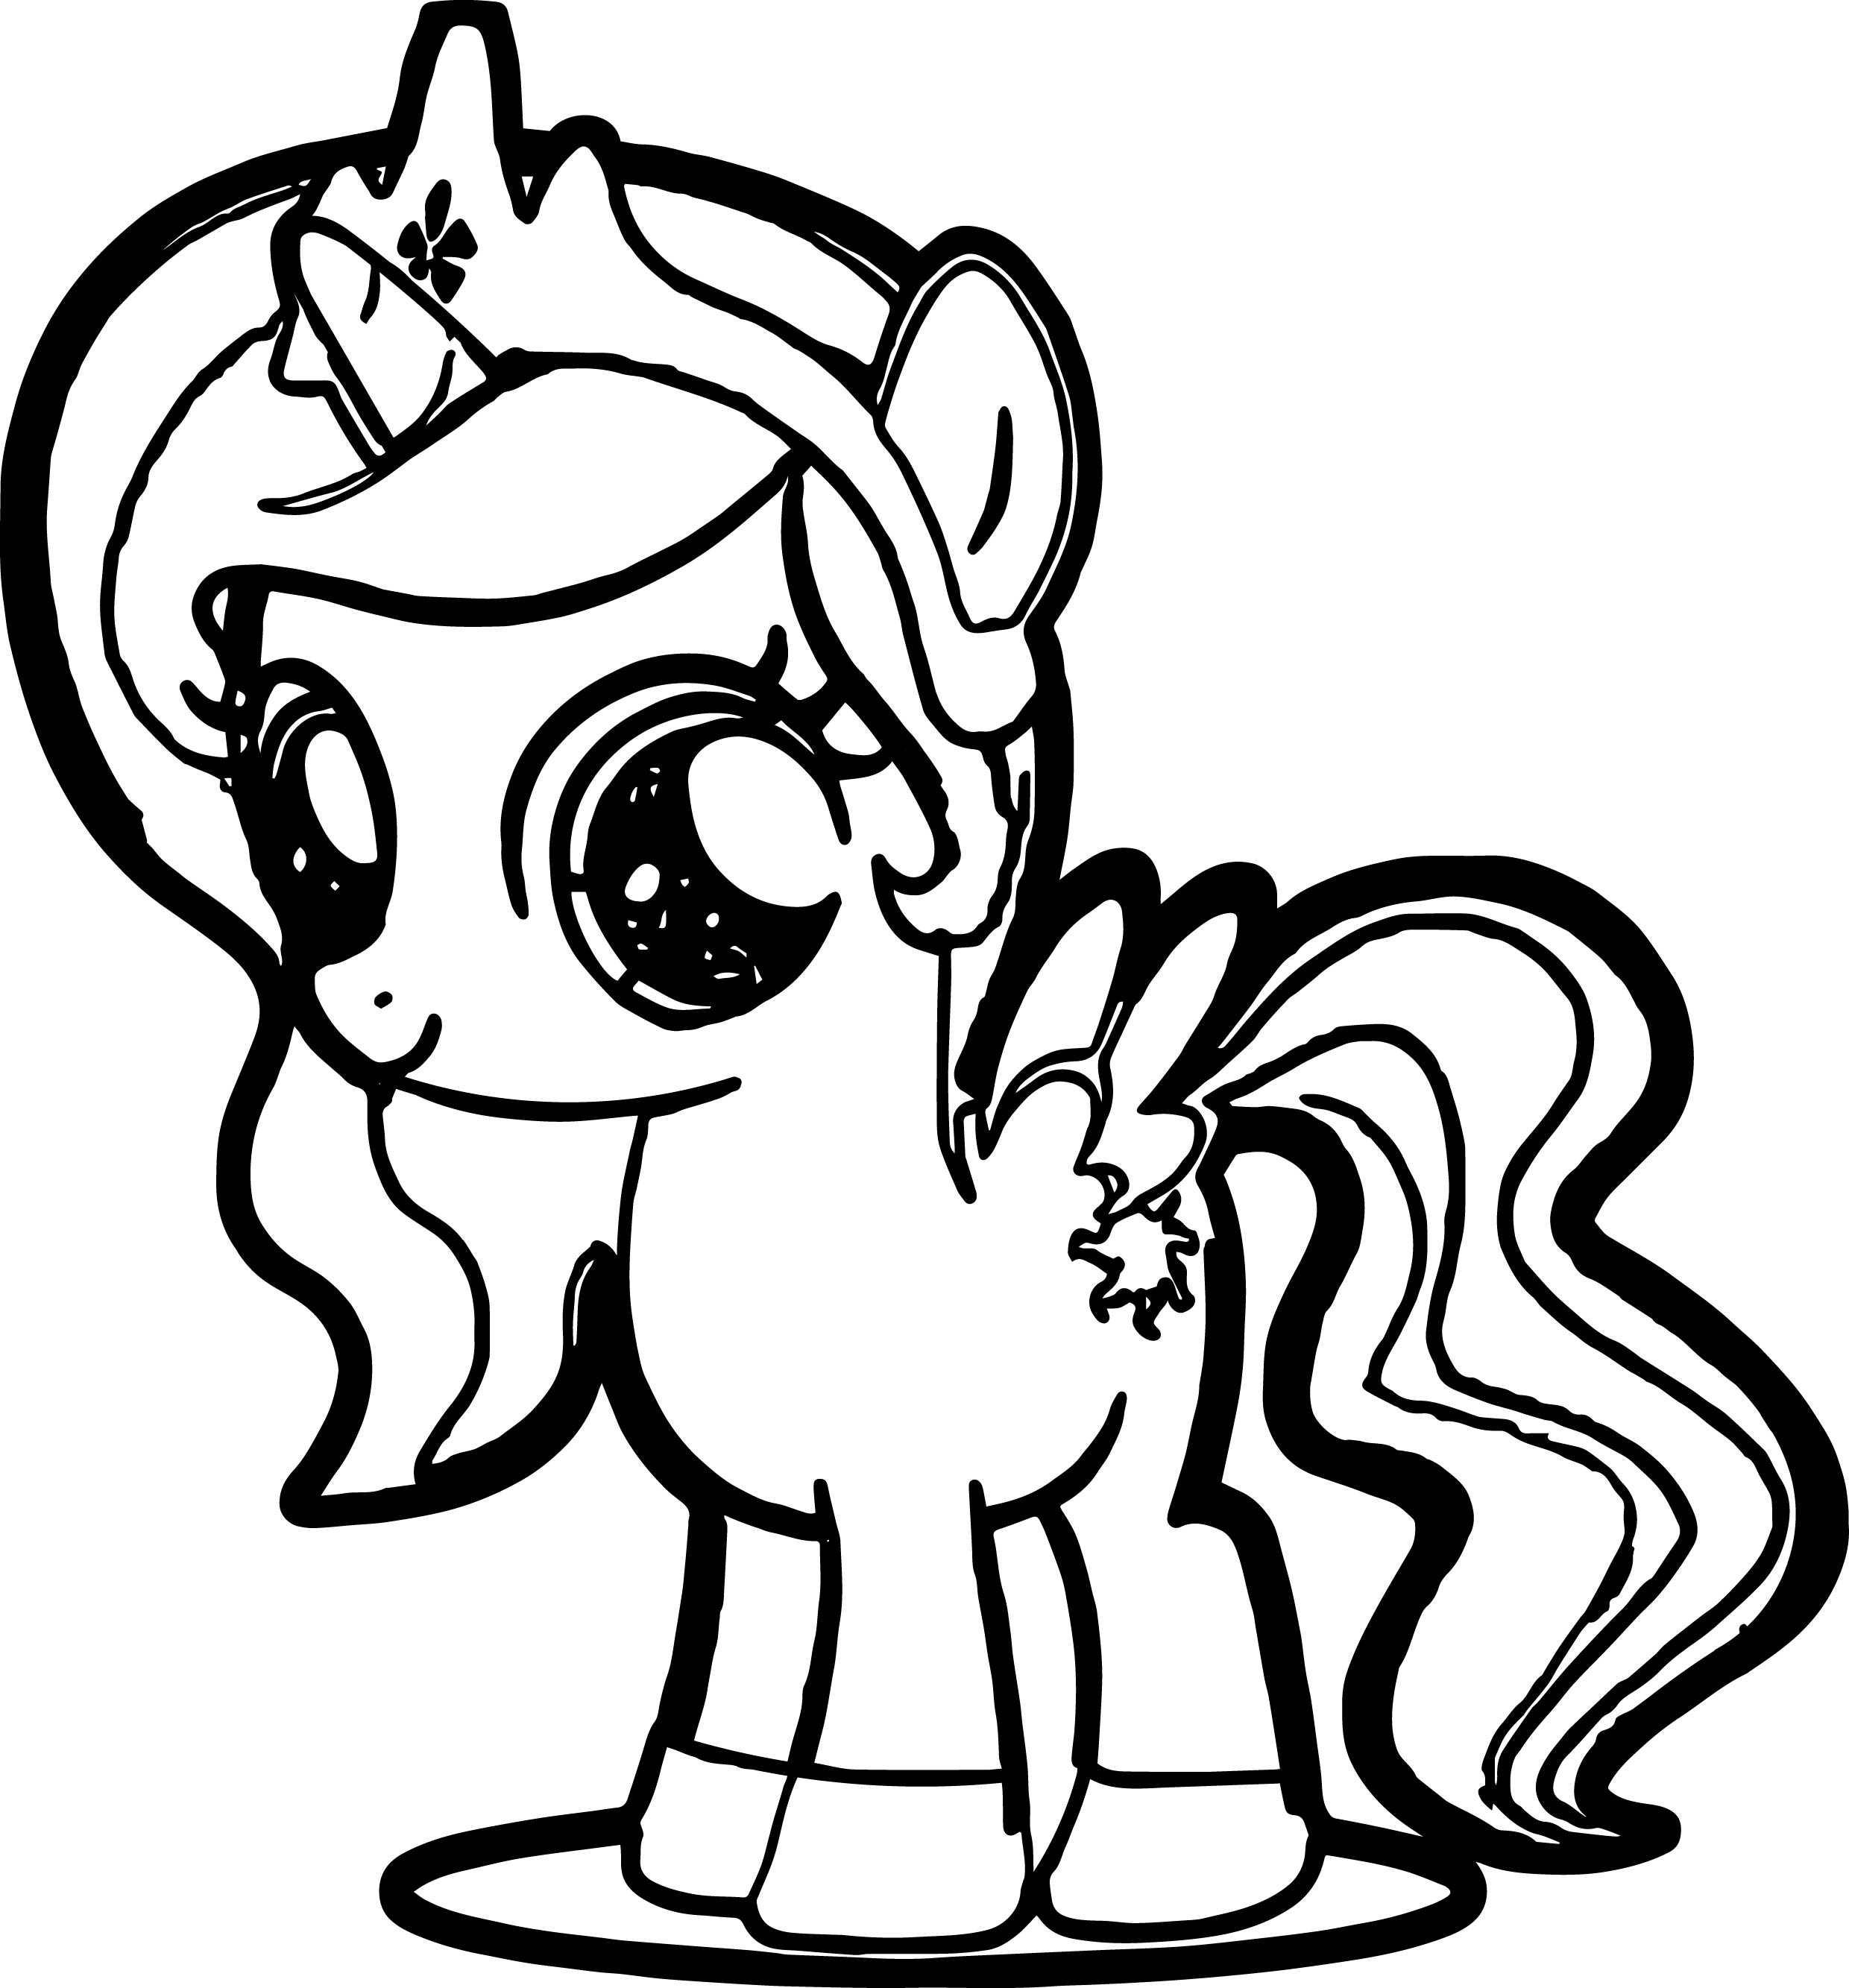 pictures of my little pony to color free printable my little pony coloring pages at color little pony pictures to my of